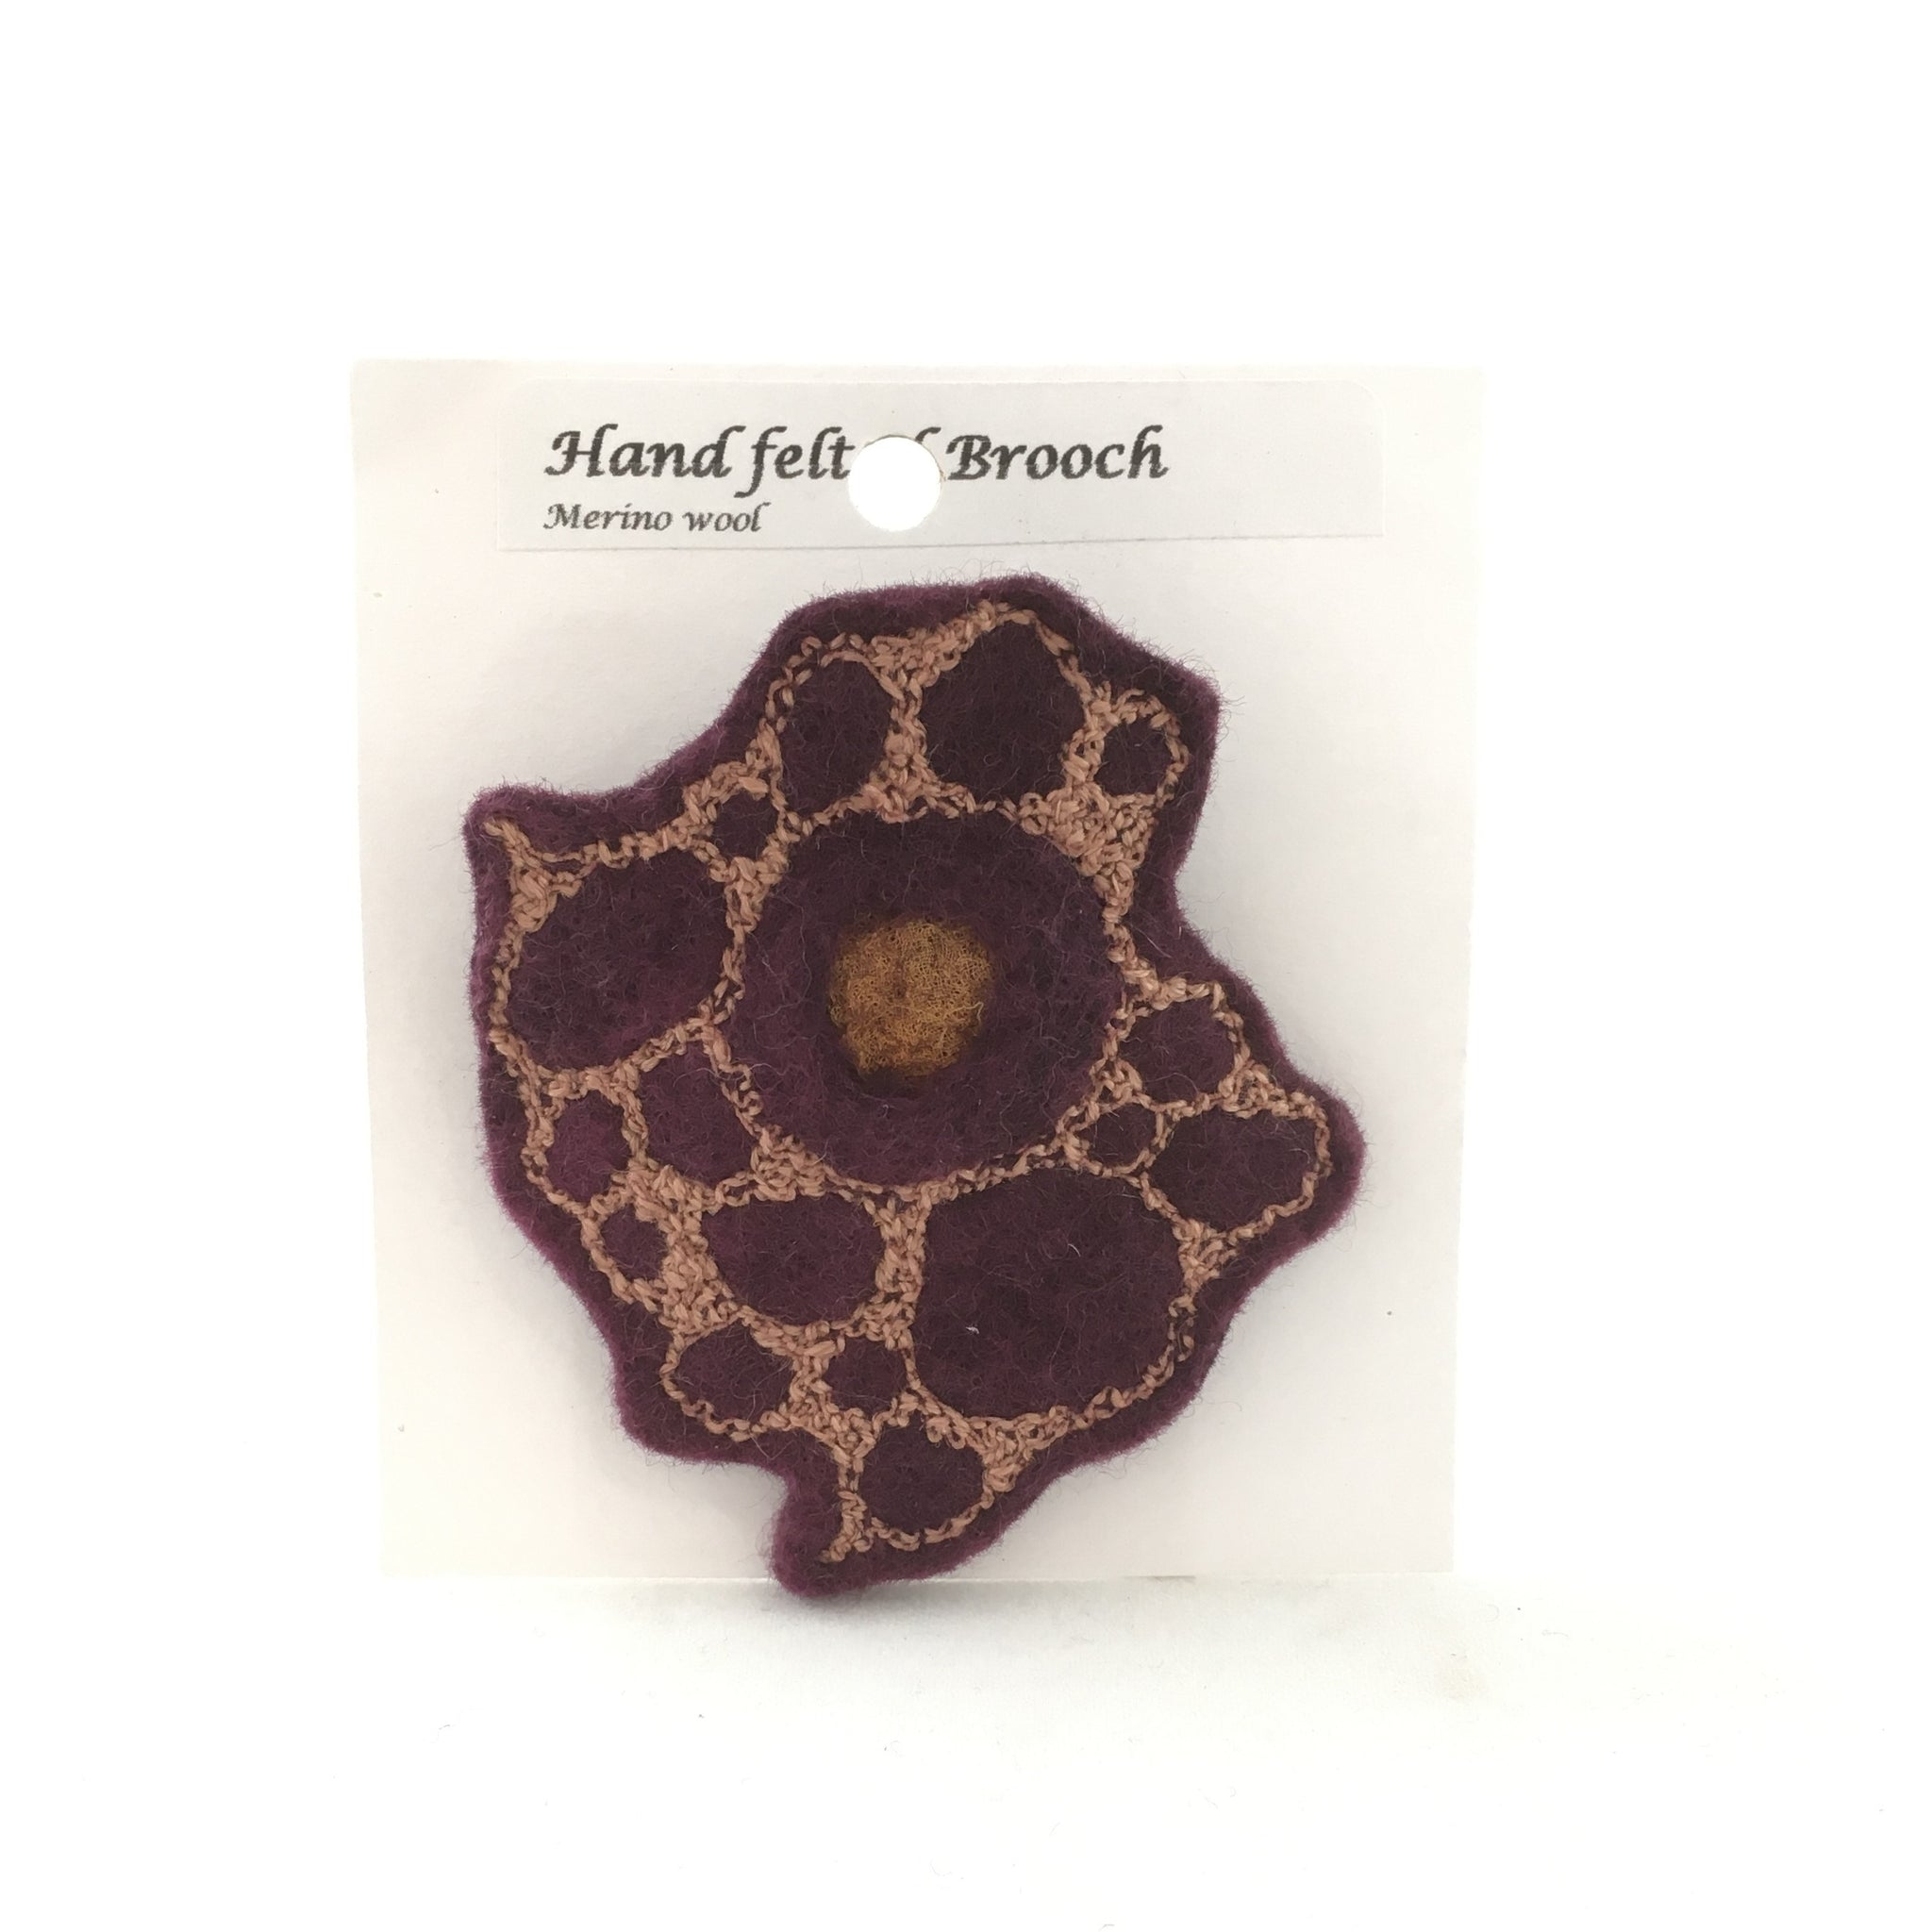 Felted brooch by Helen Macritchie